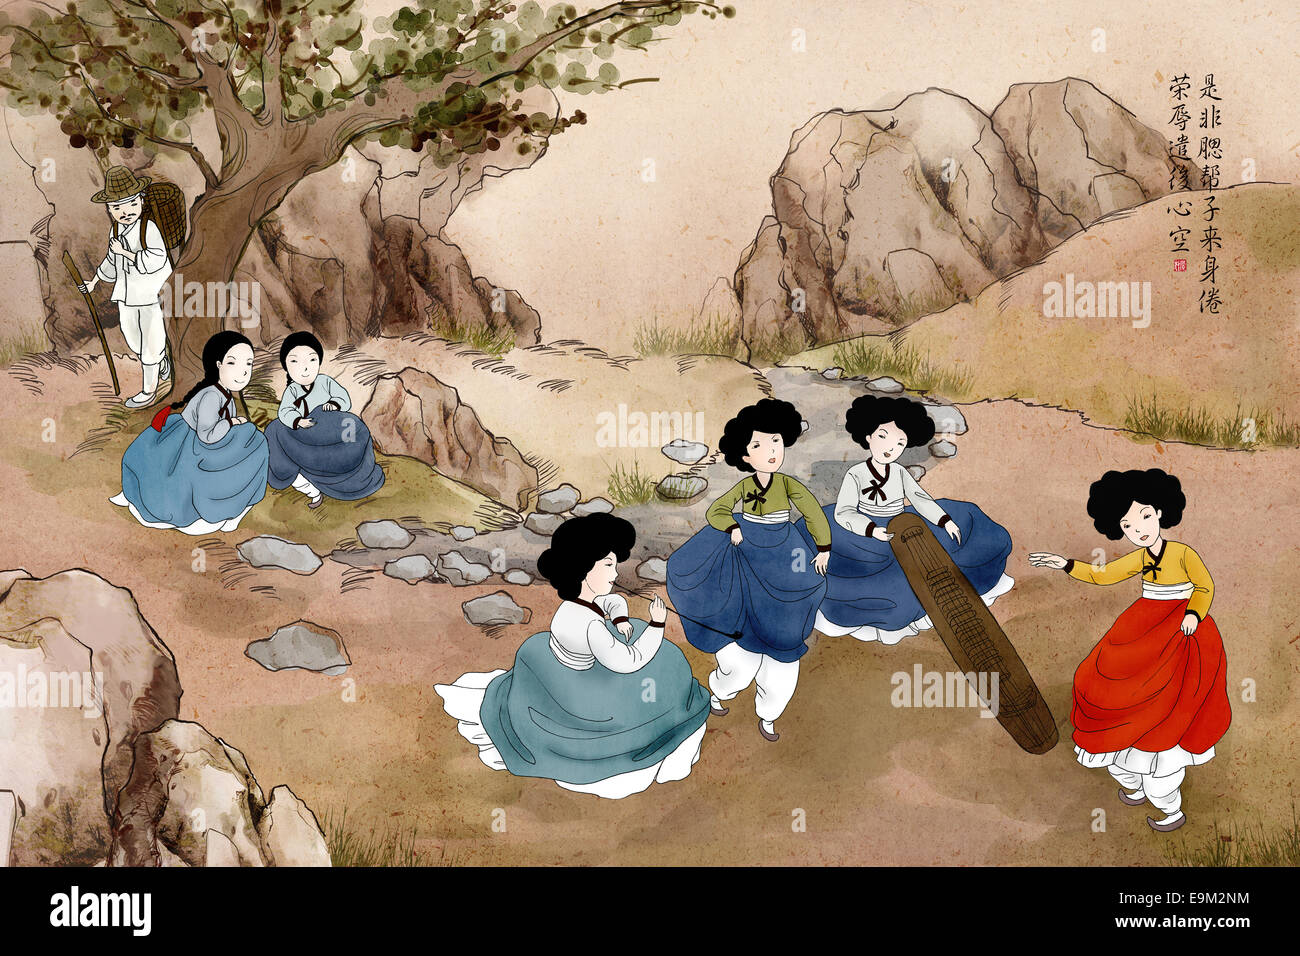 Korea Traditional Genre Painting Stock Photo: 74814592 - Alamy